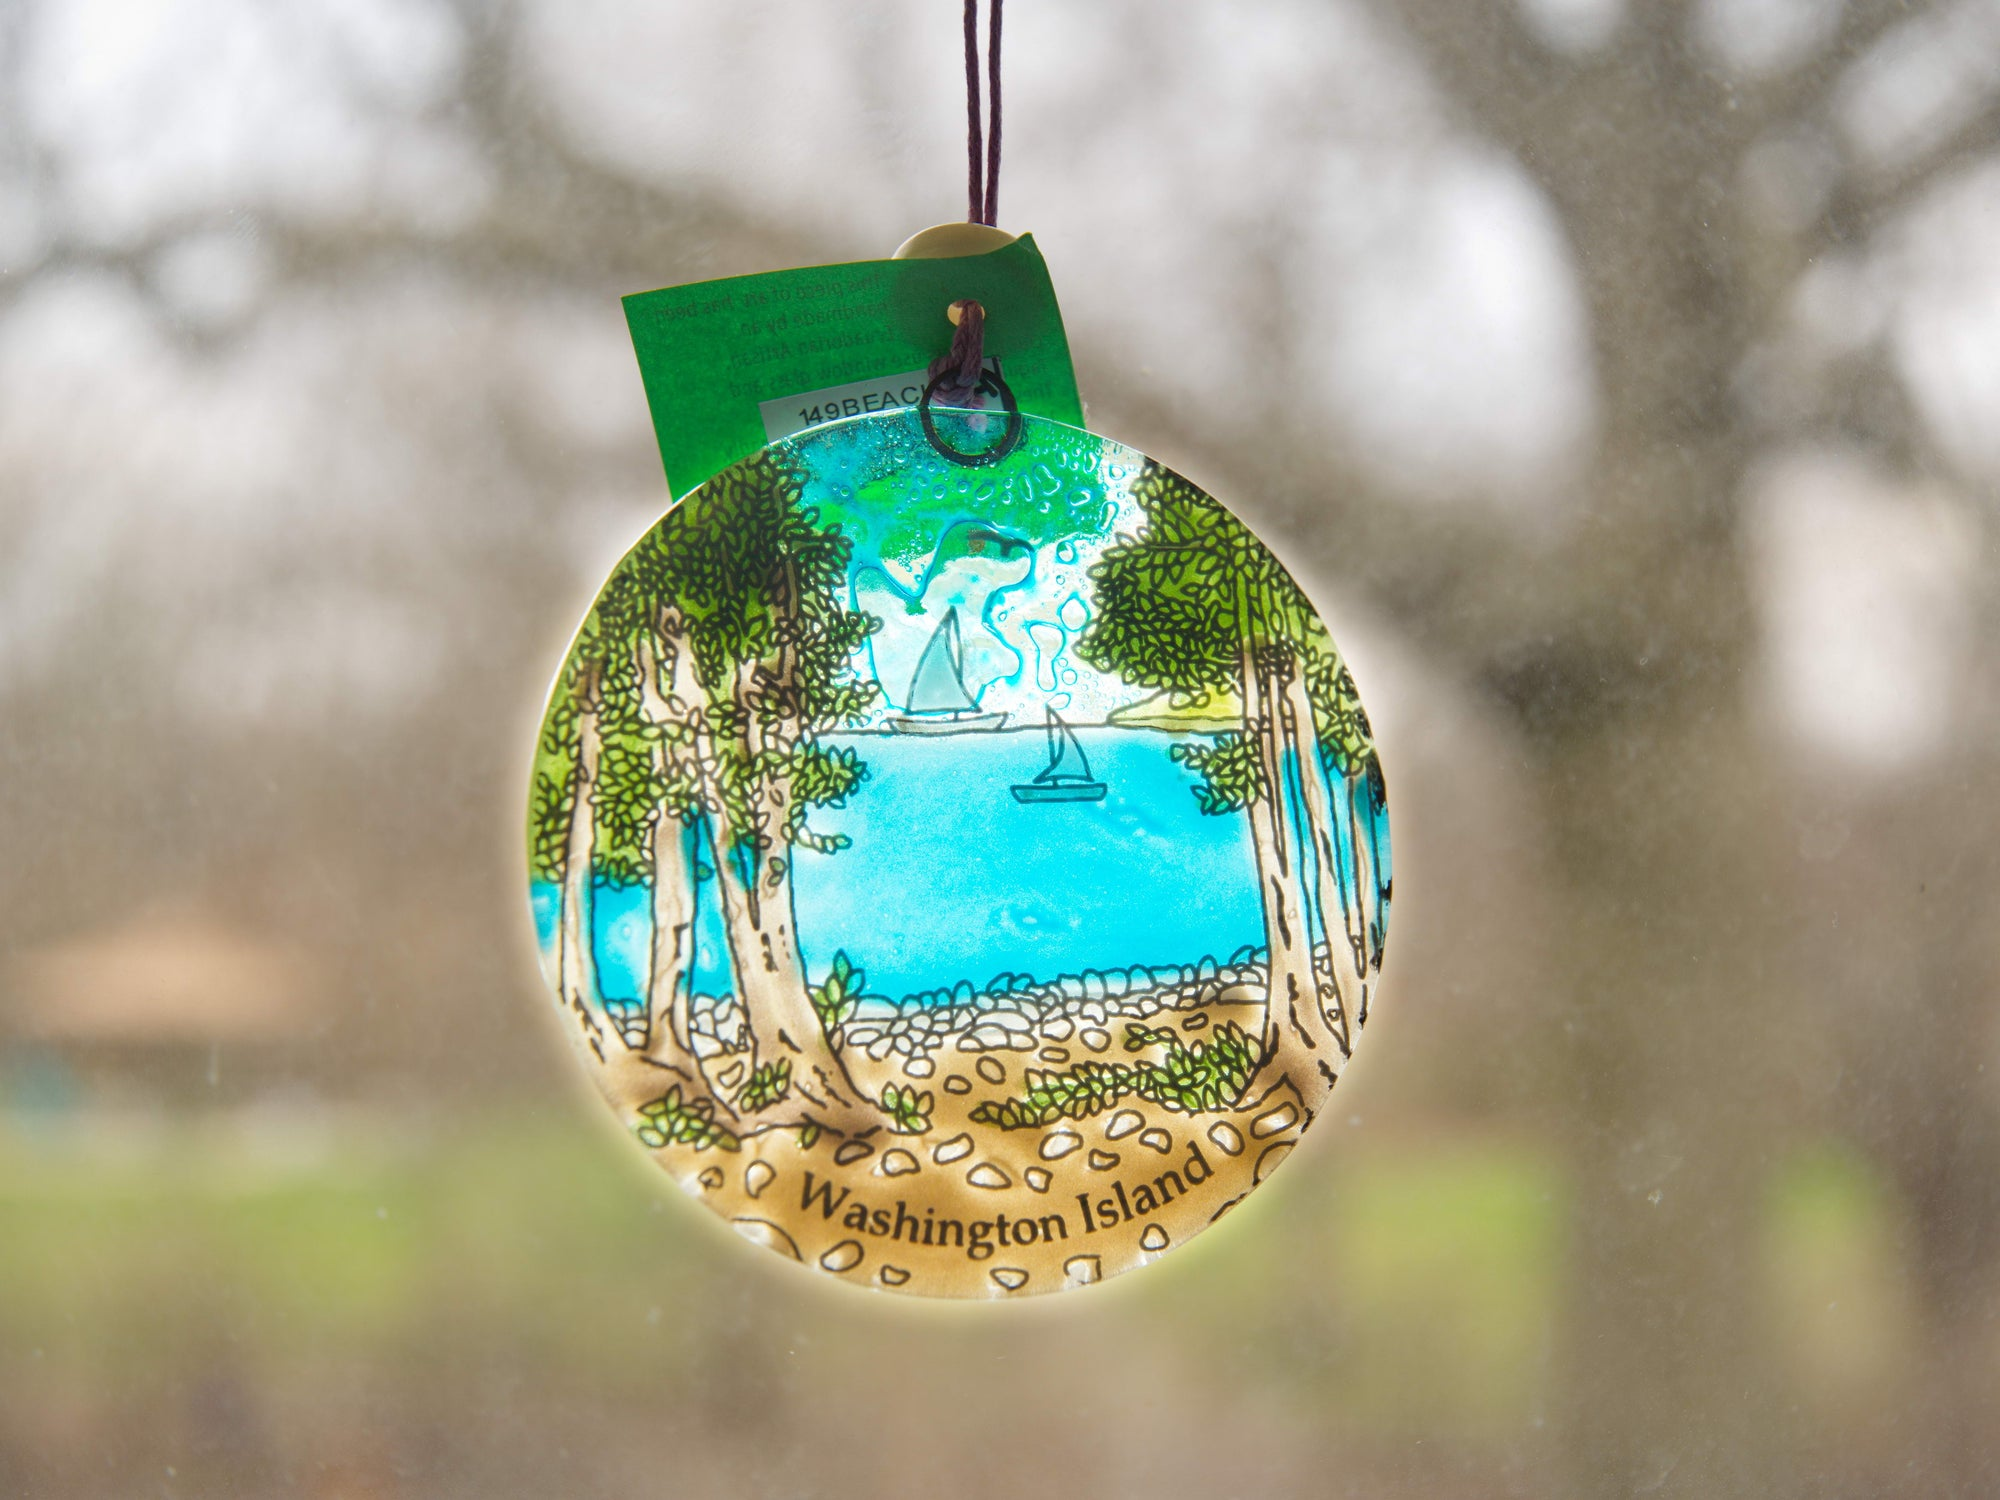 Suncatcher & Ornament - Washington Island scene (IS)